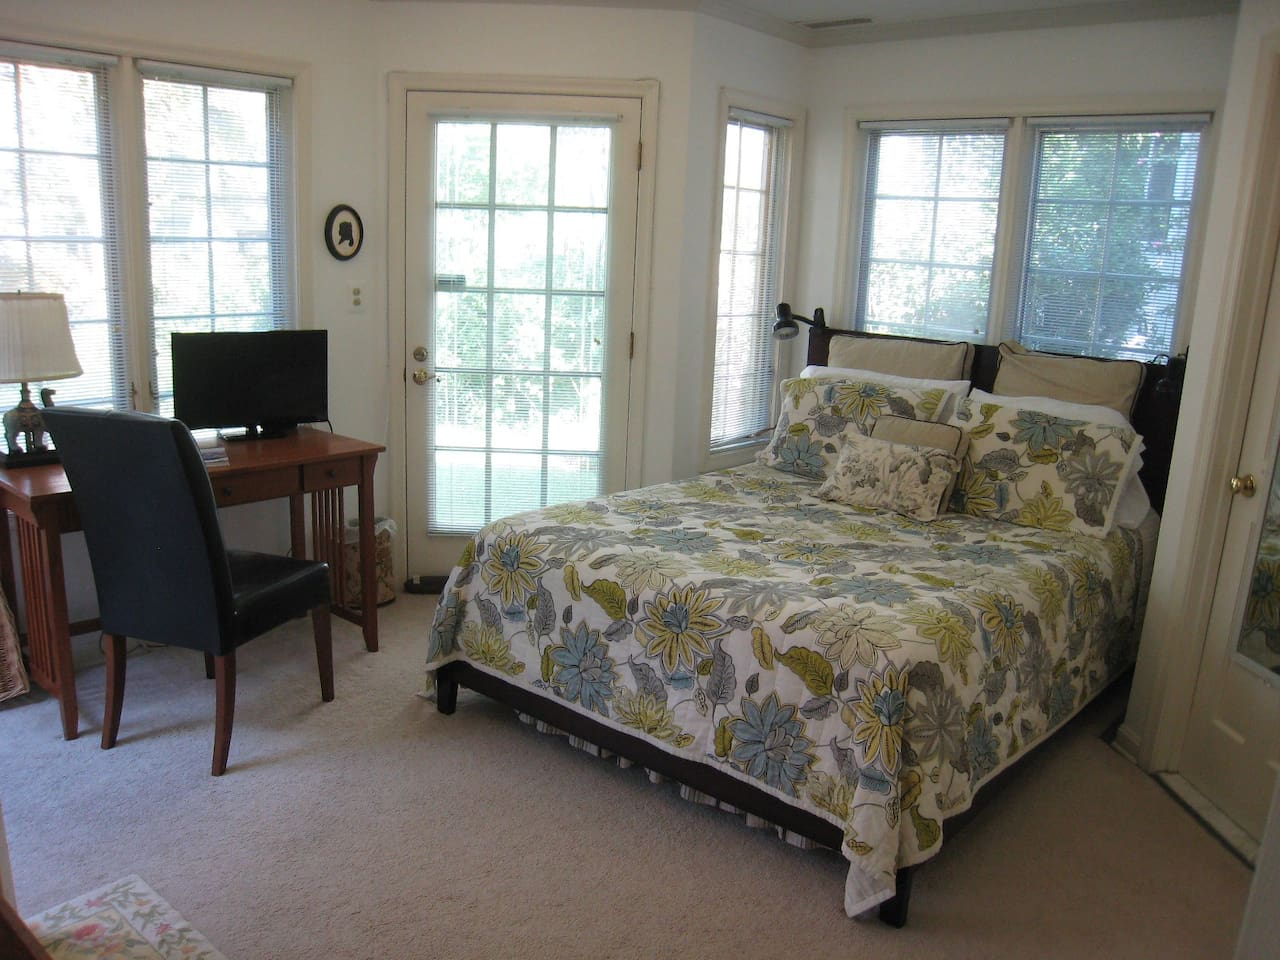 New Queen bed and a desk with comfortable seating where you can pour over maps as you plan your visit.